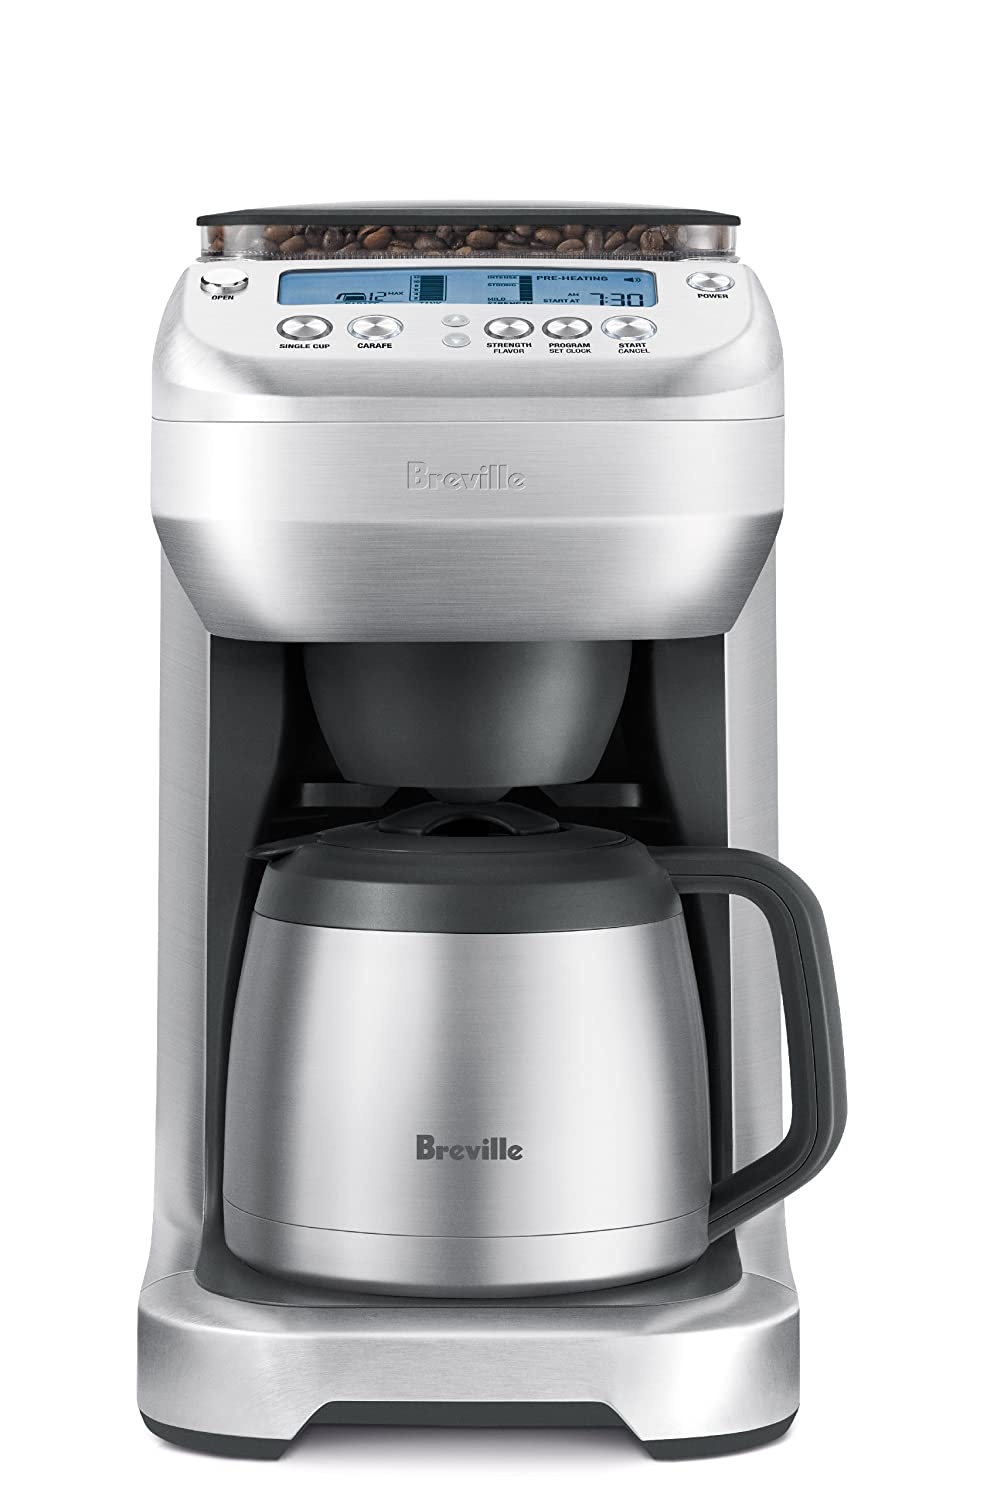 Breville BDC600XL YouBrew Drip Coffee Maker Review